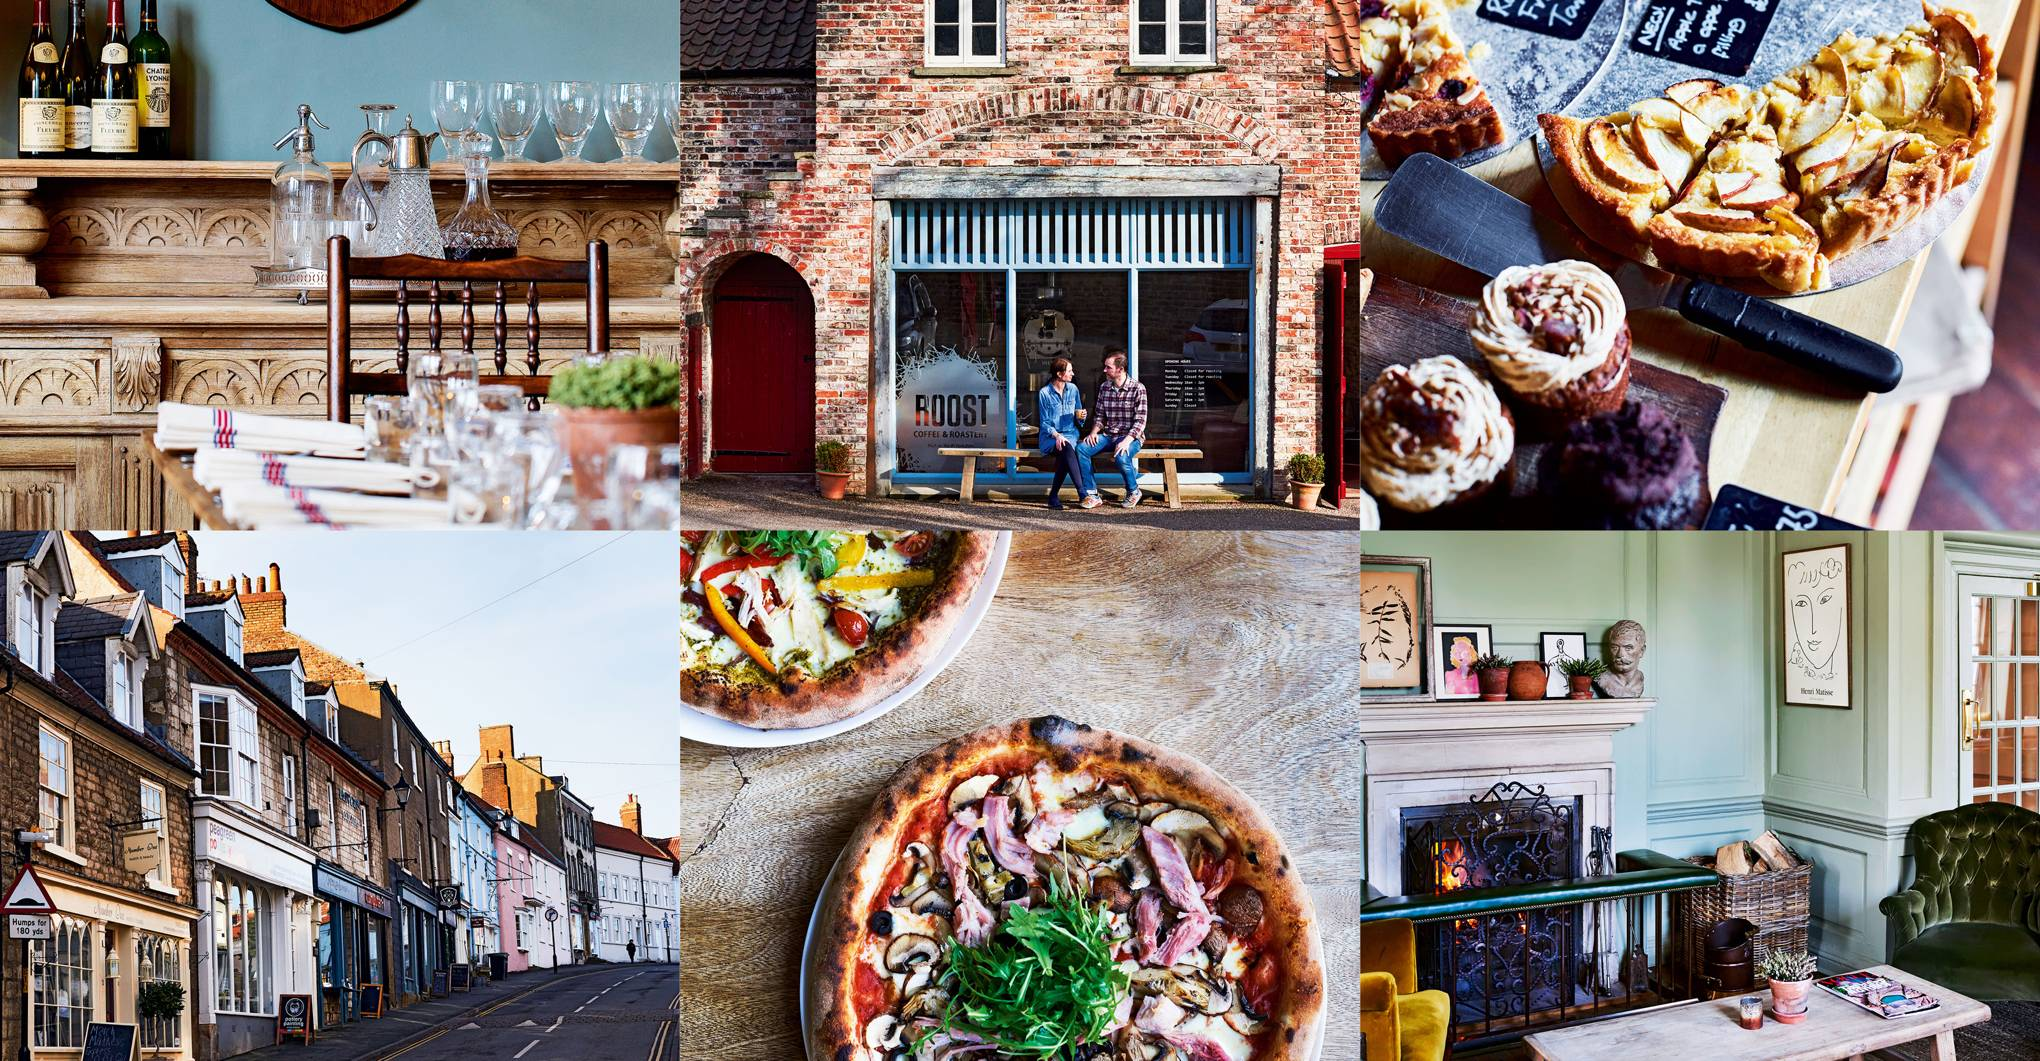 Malton: the Yorkshire town undergoing an artisanal revolution